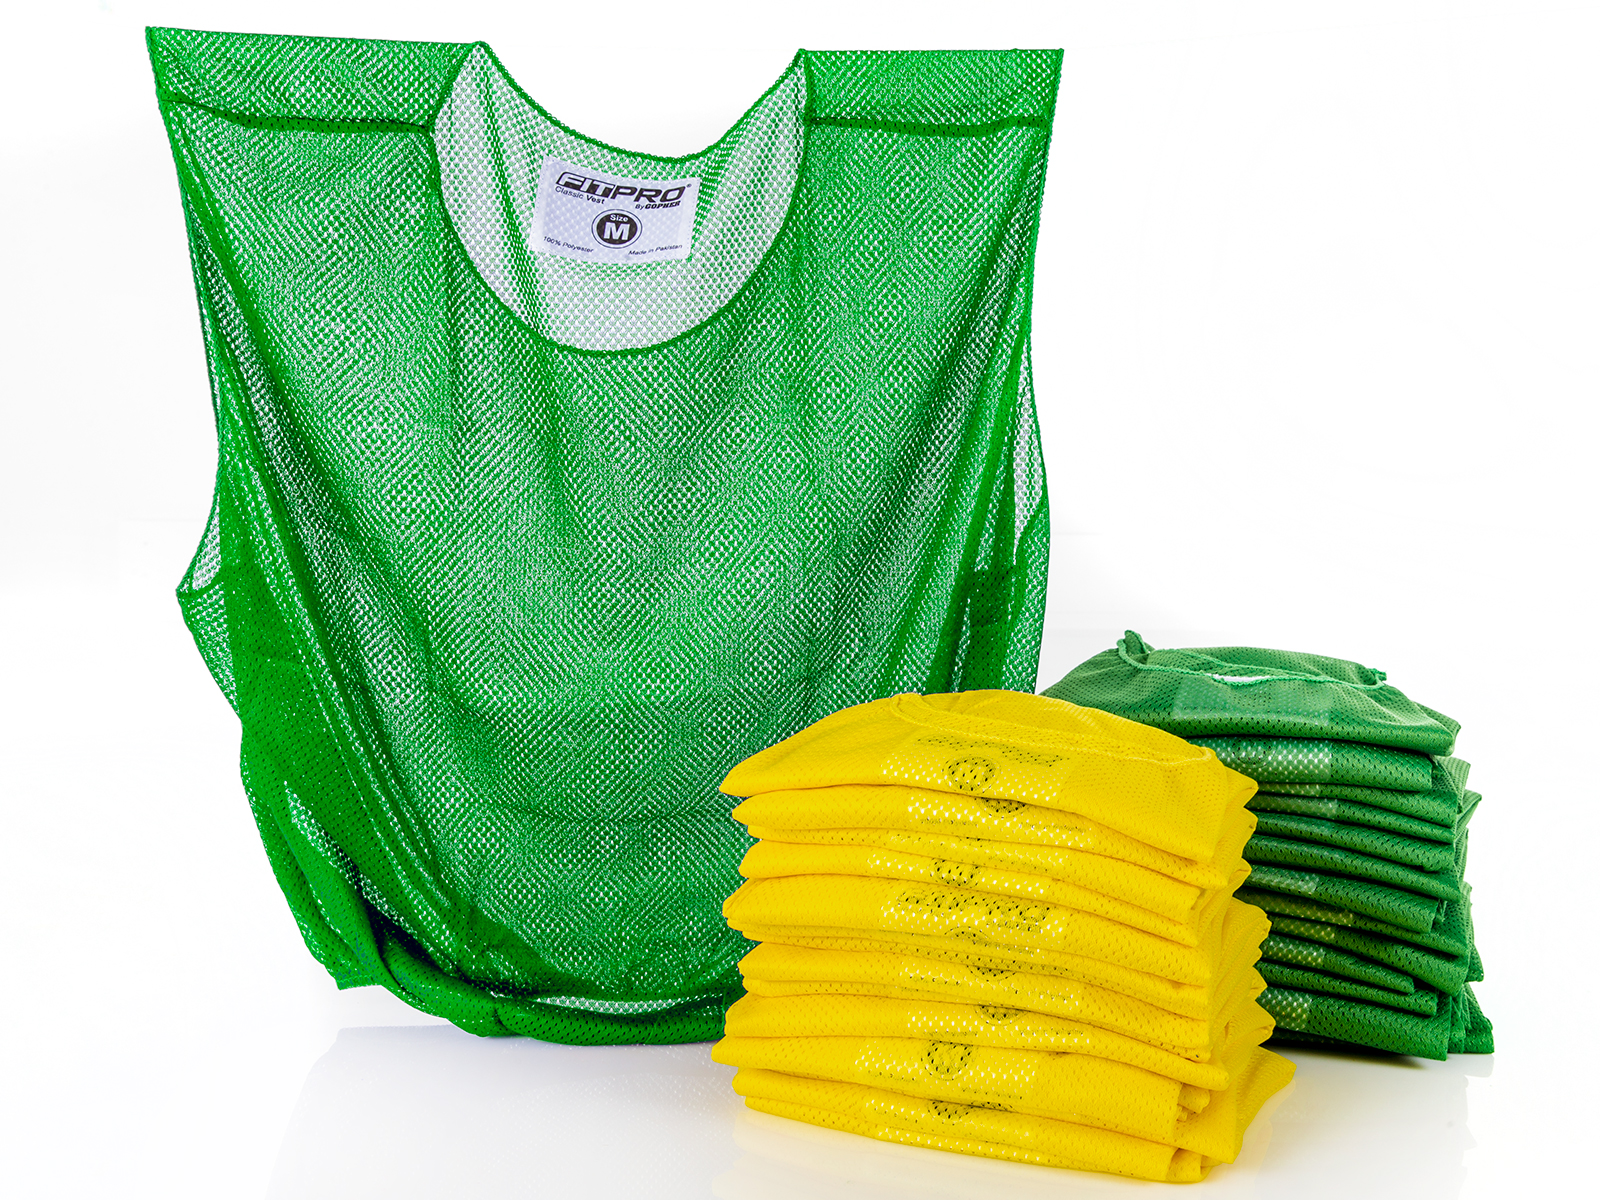 Medium set of 30 mesh yellow and green vests